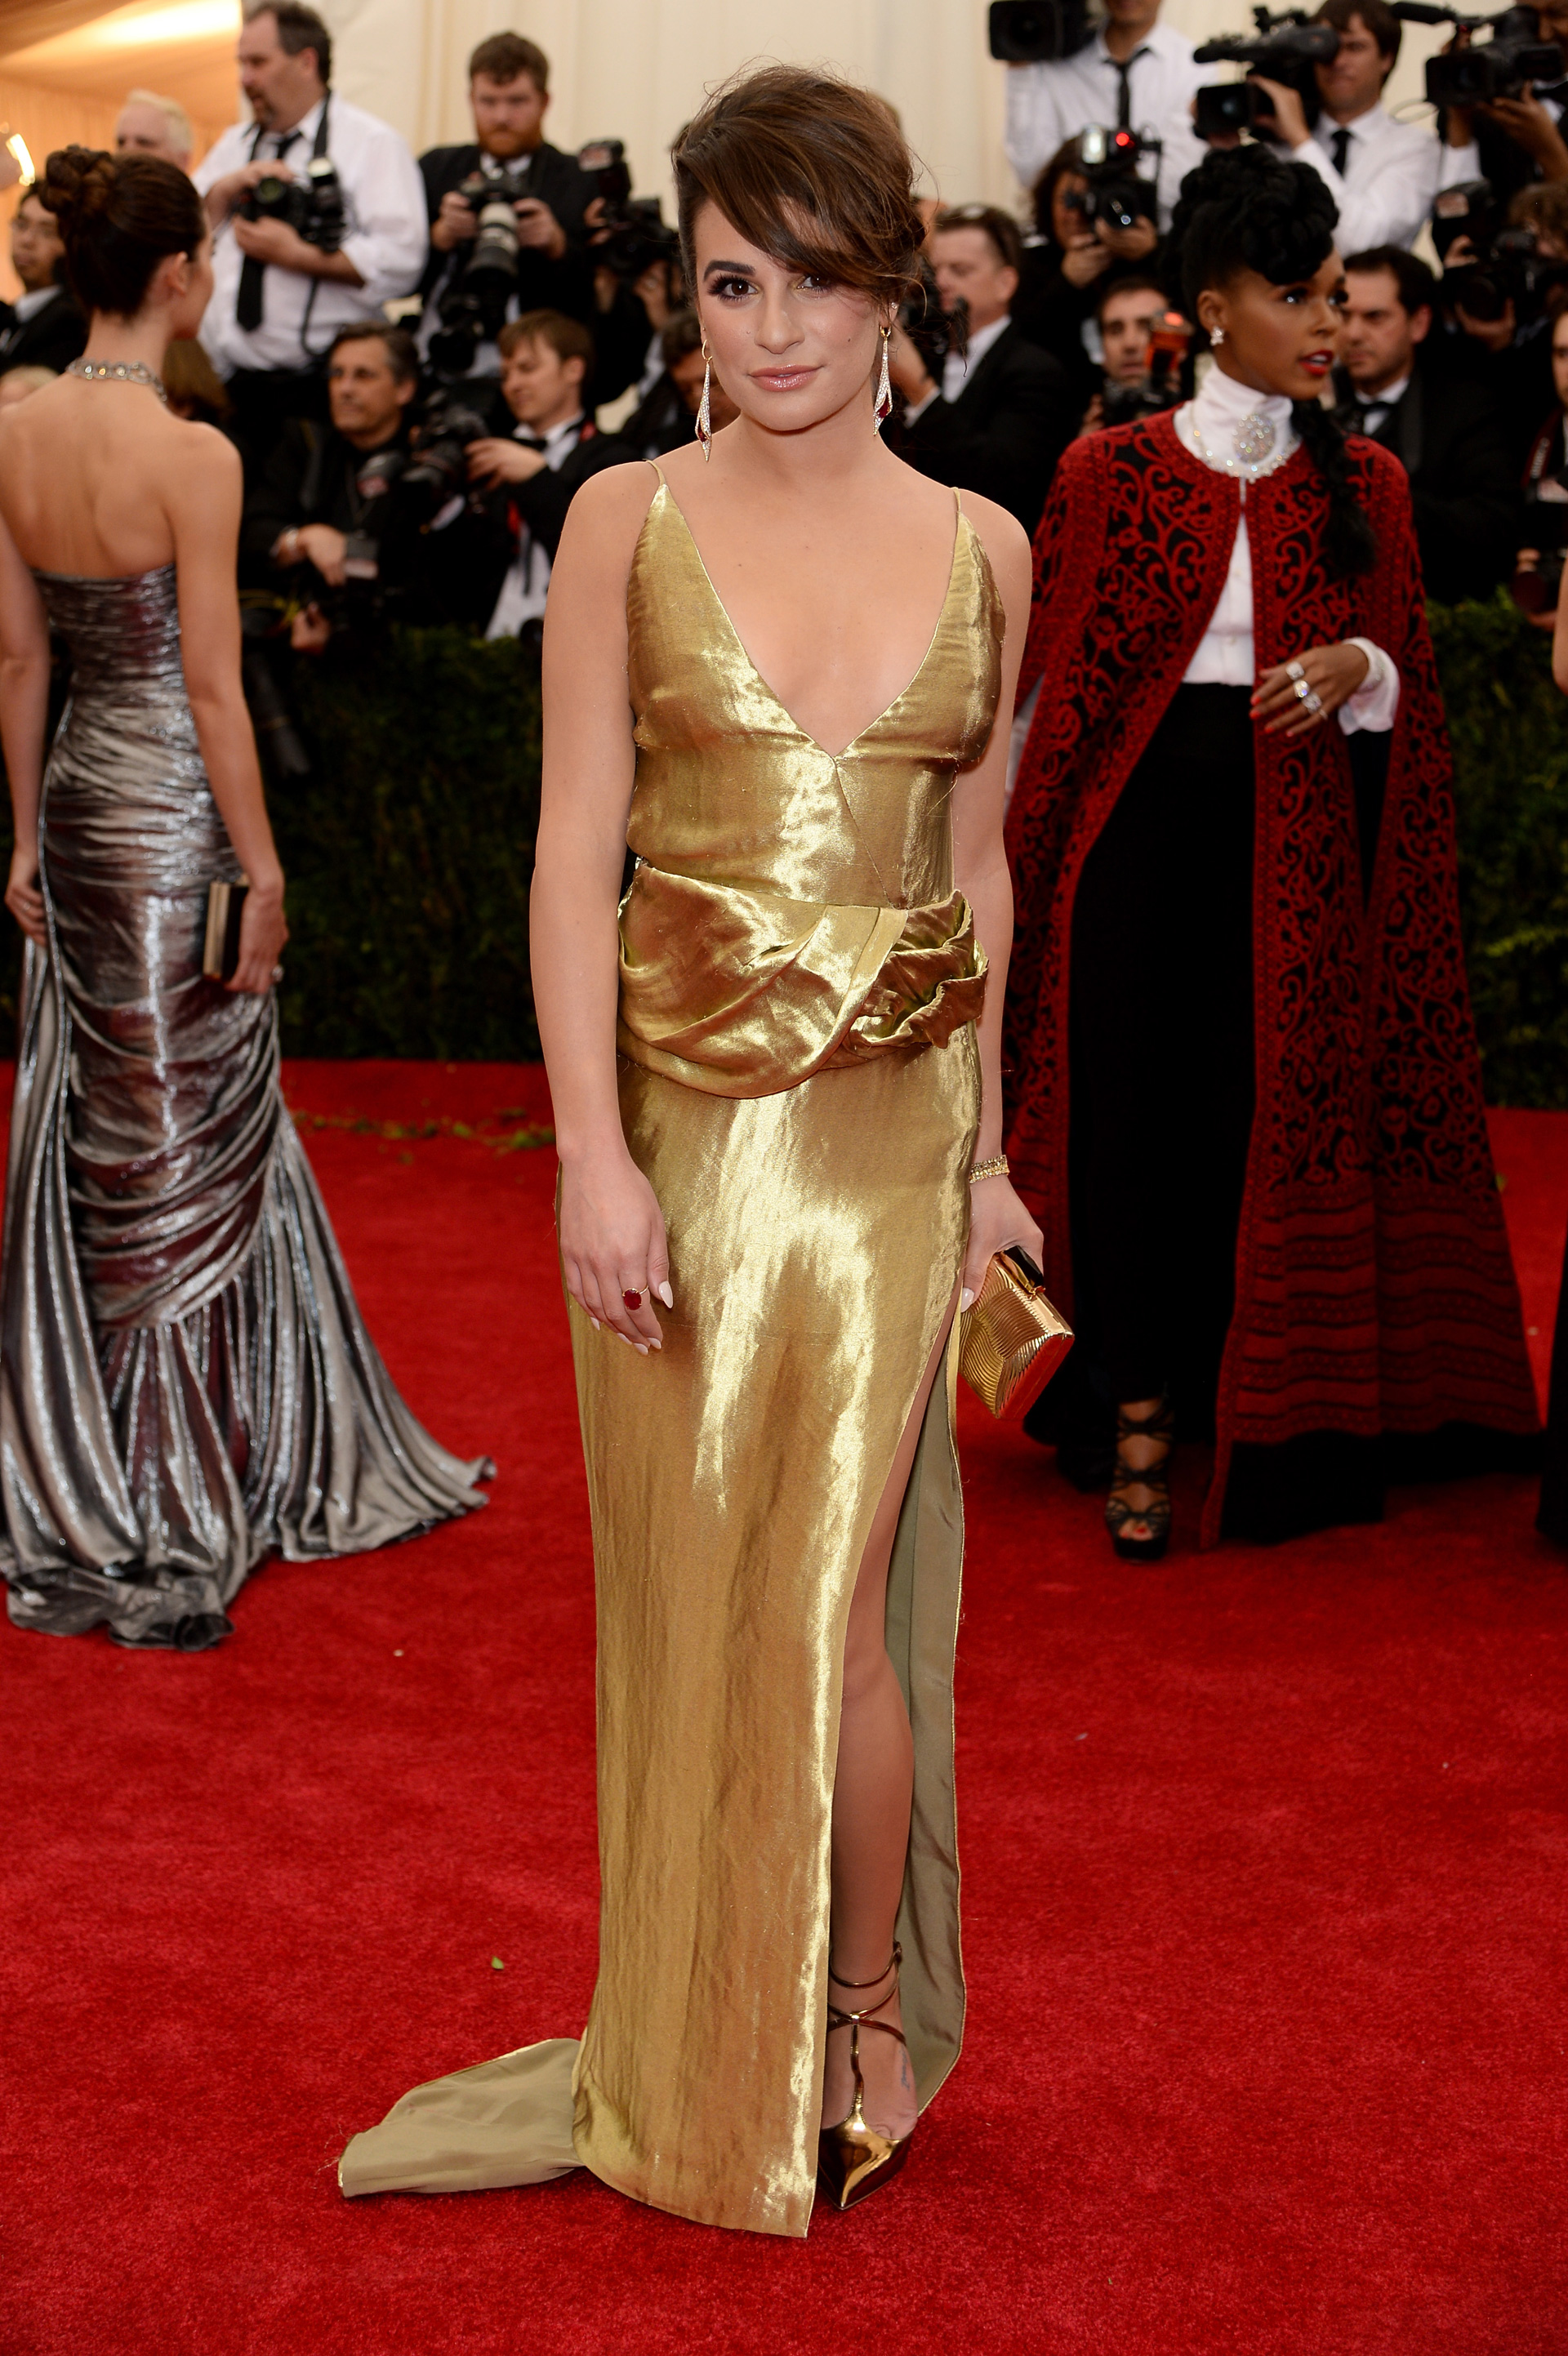 Lea Michele at the 2014 Met Gala